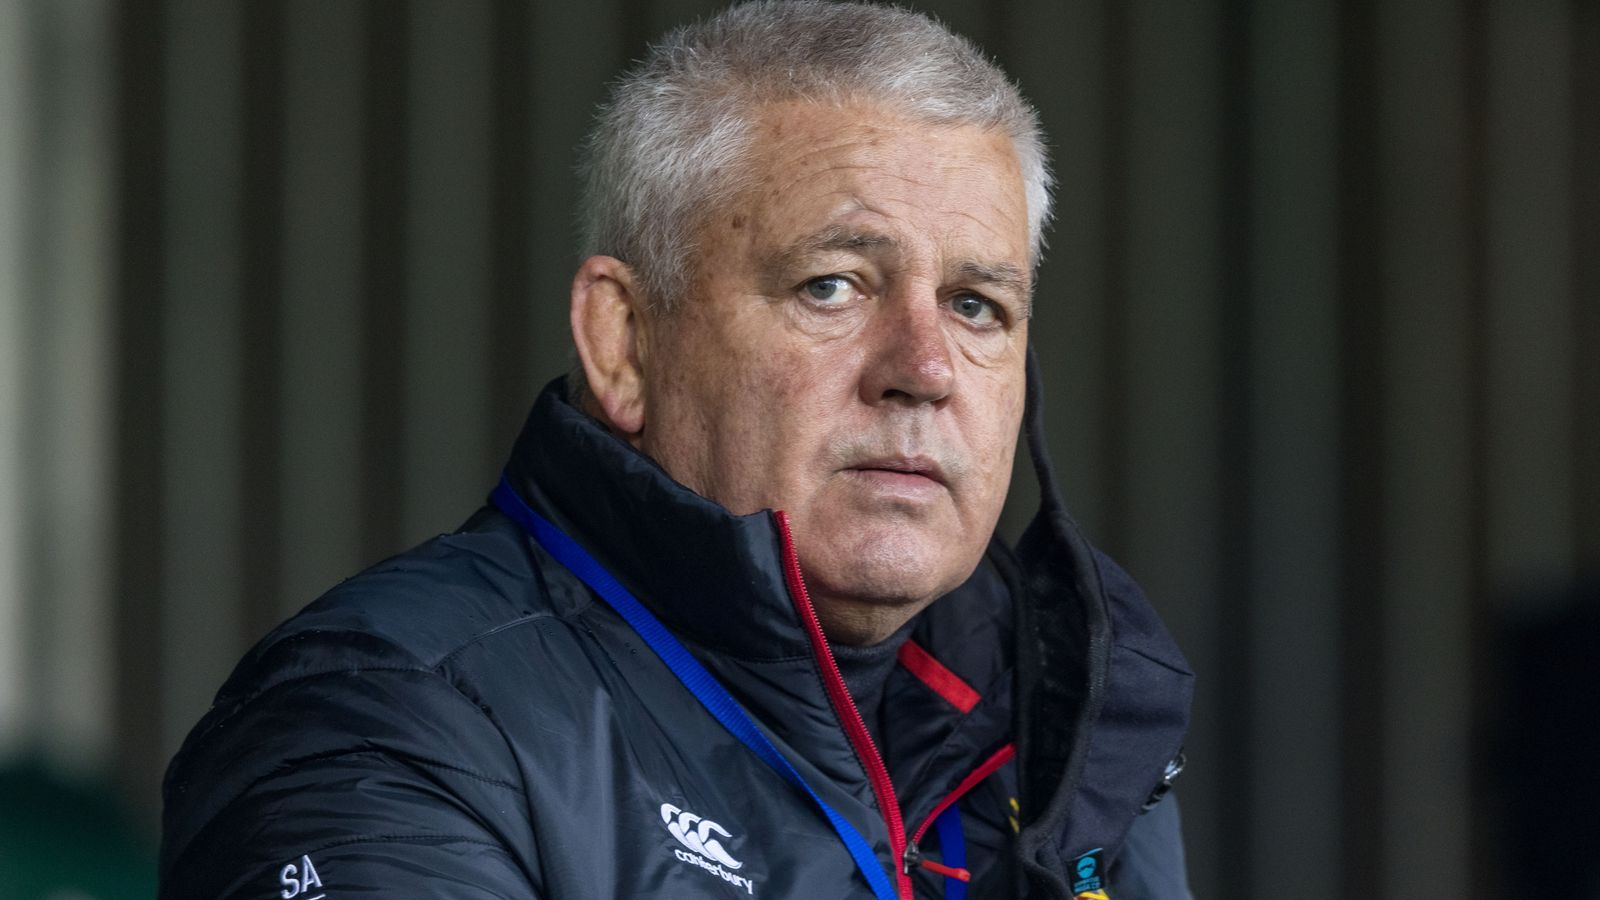 British and Irish Lions' opening tour opponents Emirates Lions hit by Covid-19 cases - Sky Sports